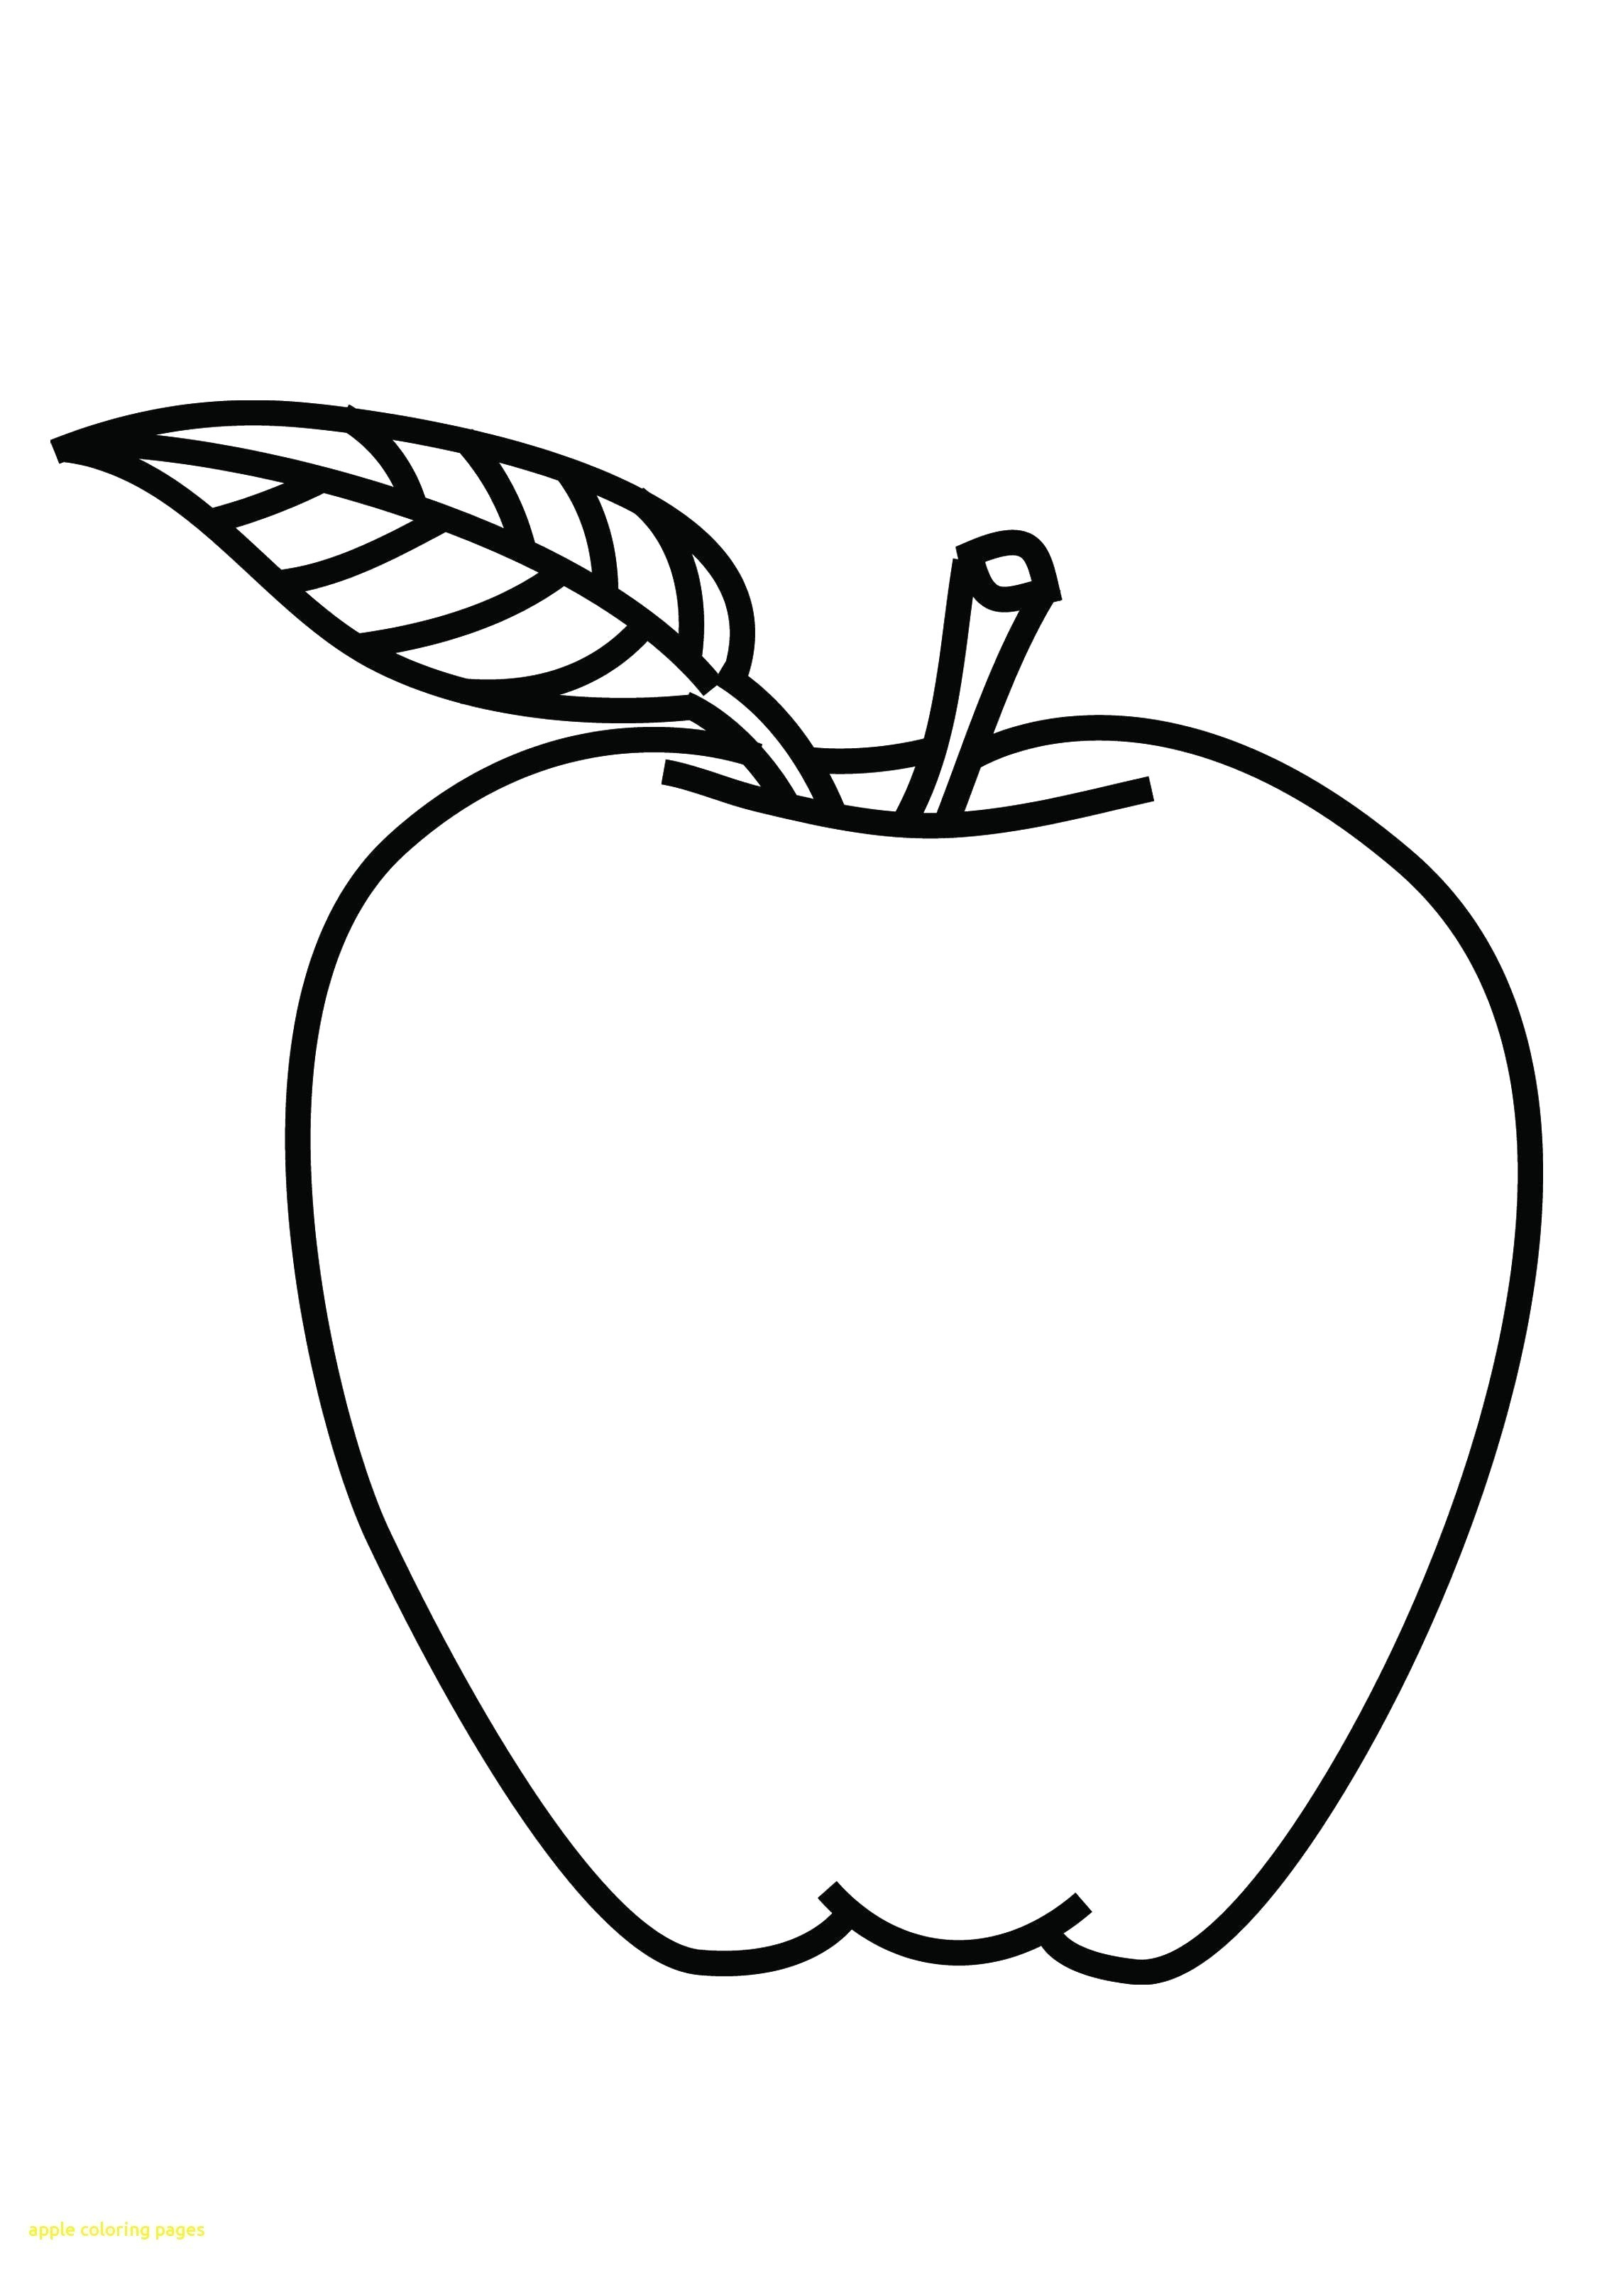 Apple clipart drawing, Apple drawing Transparent FREE for.